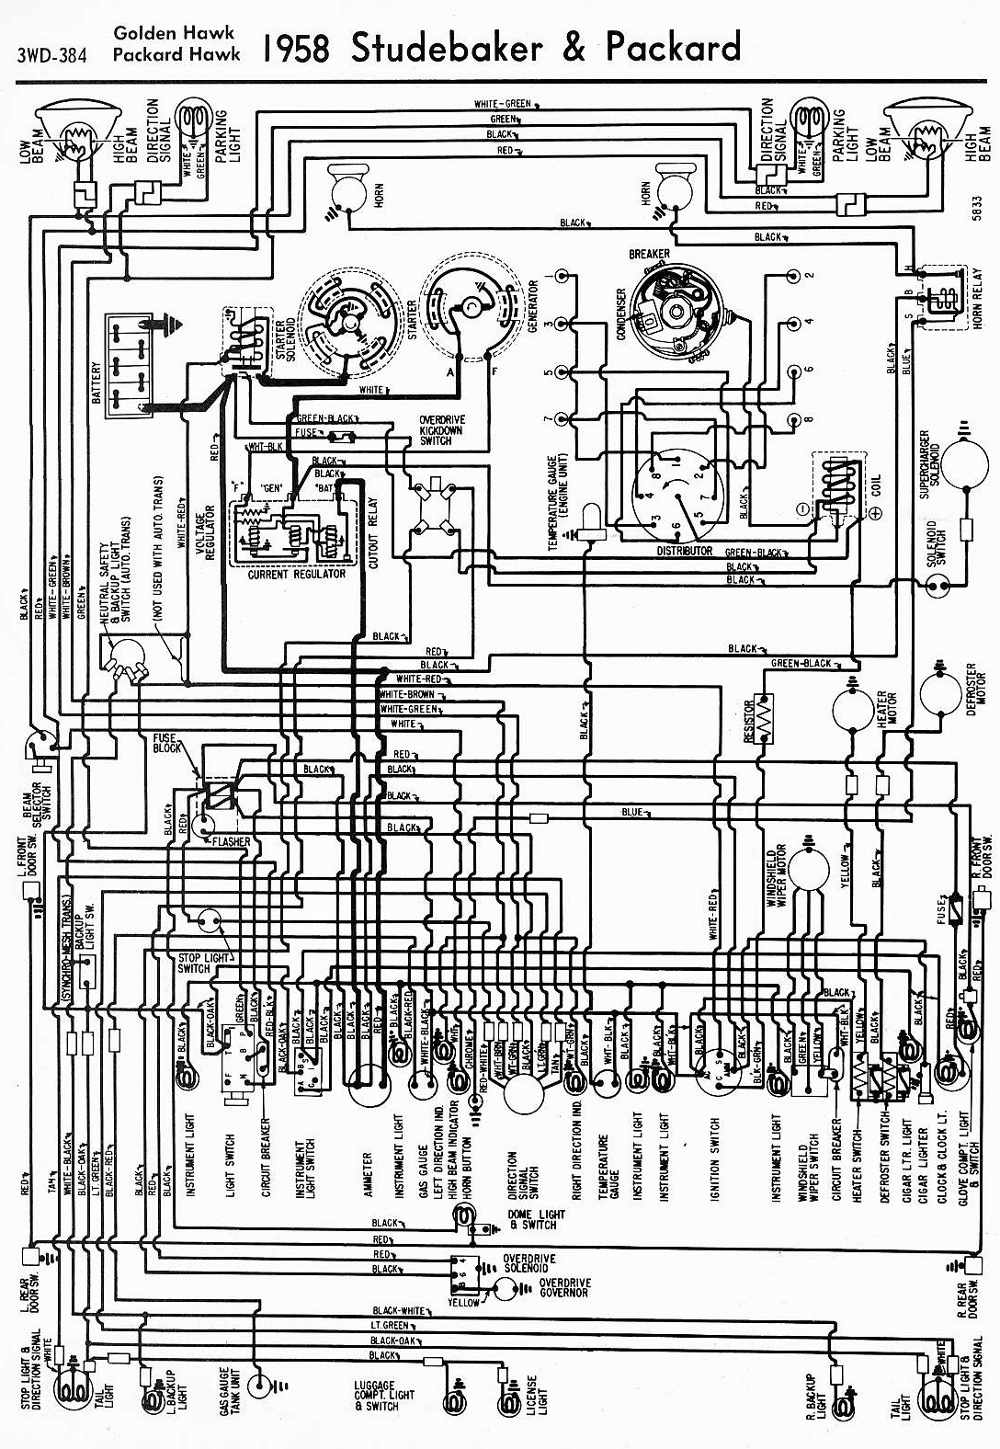 small resolution of 1958 studebaker and packard golden hawk and packard hawk wiring diagram